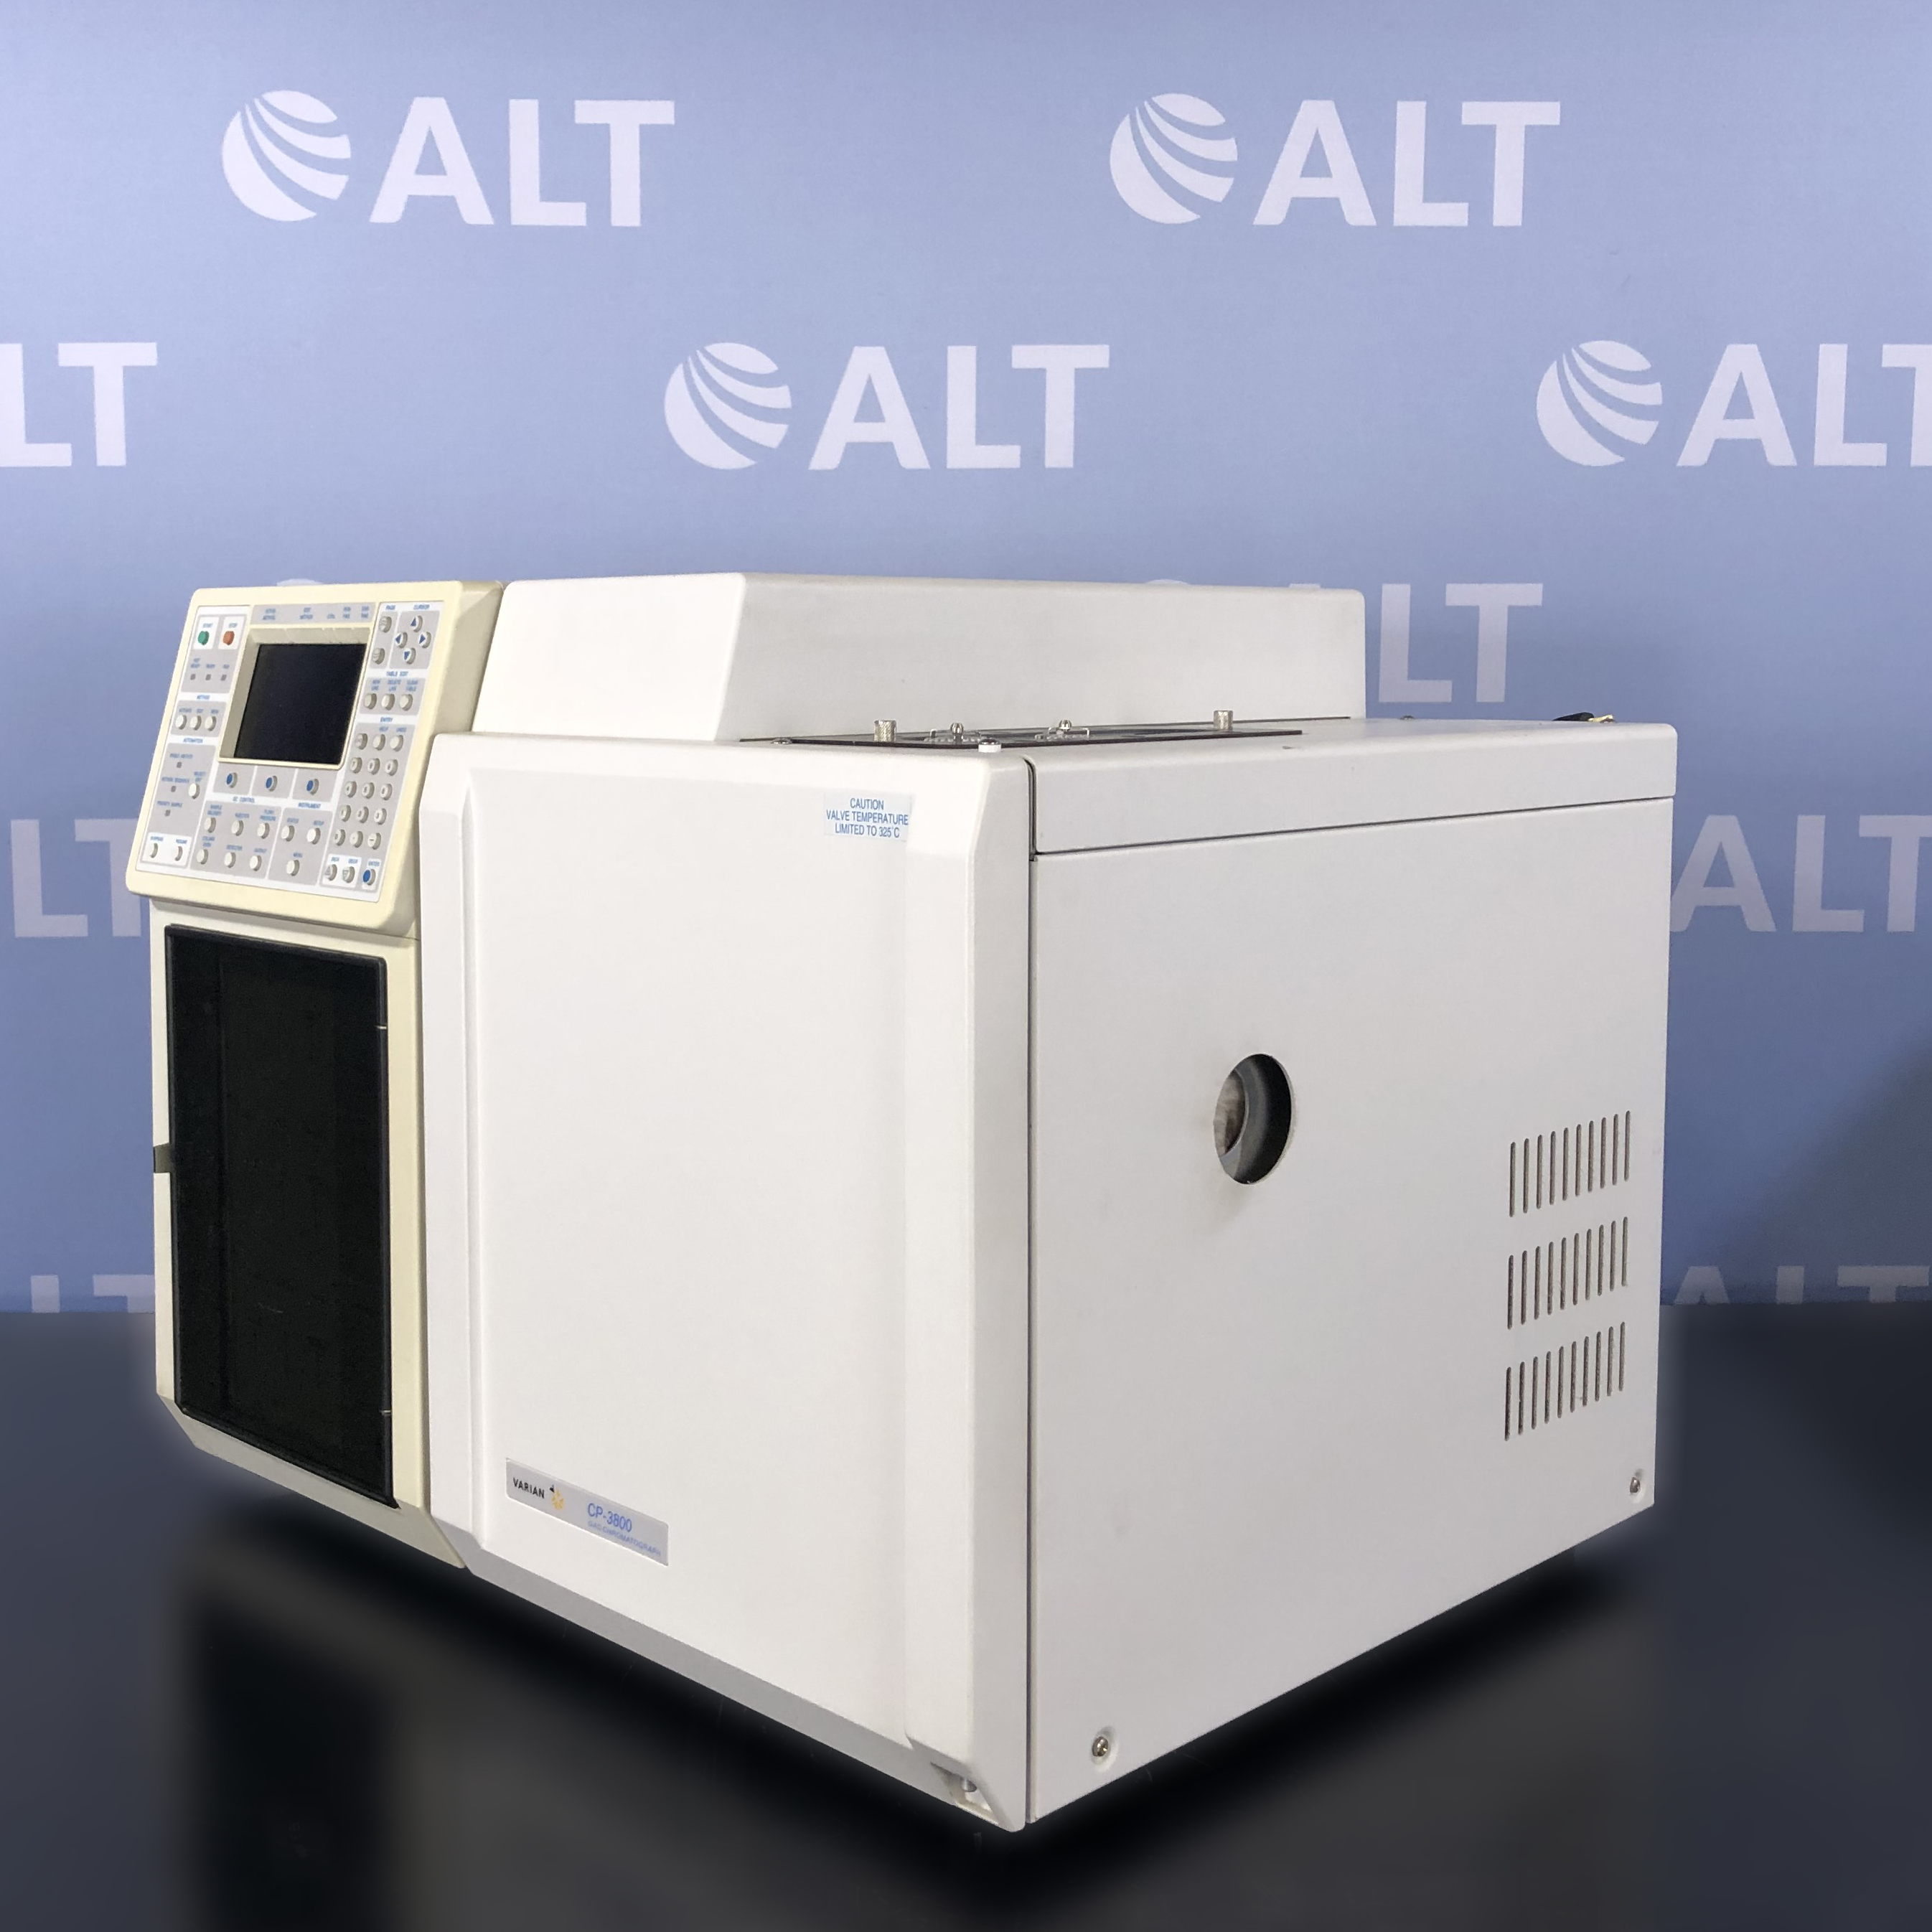 Varian CP-3800/3380 Gas Chromatograph With Varian Saturn 2200 GC/MS/MS Image